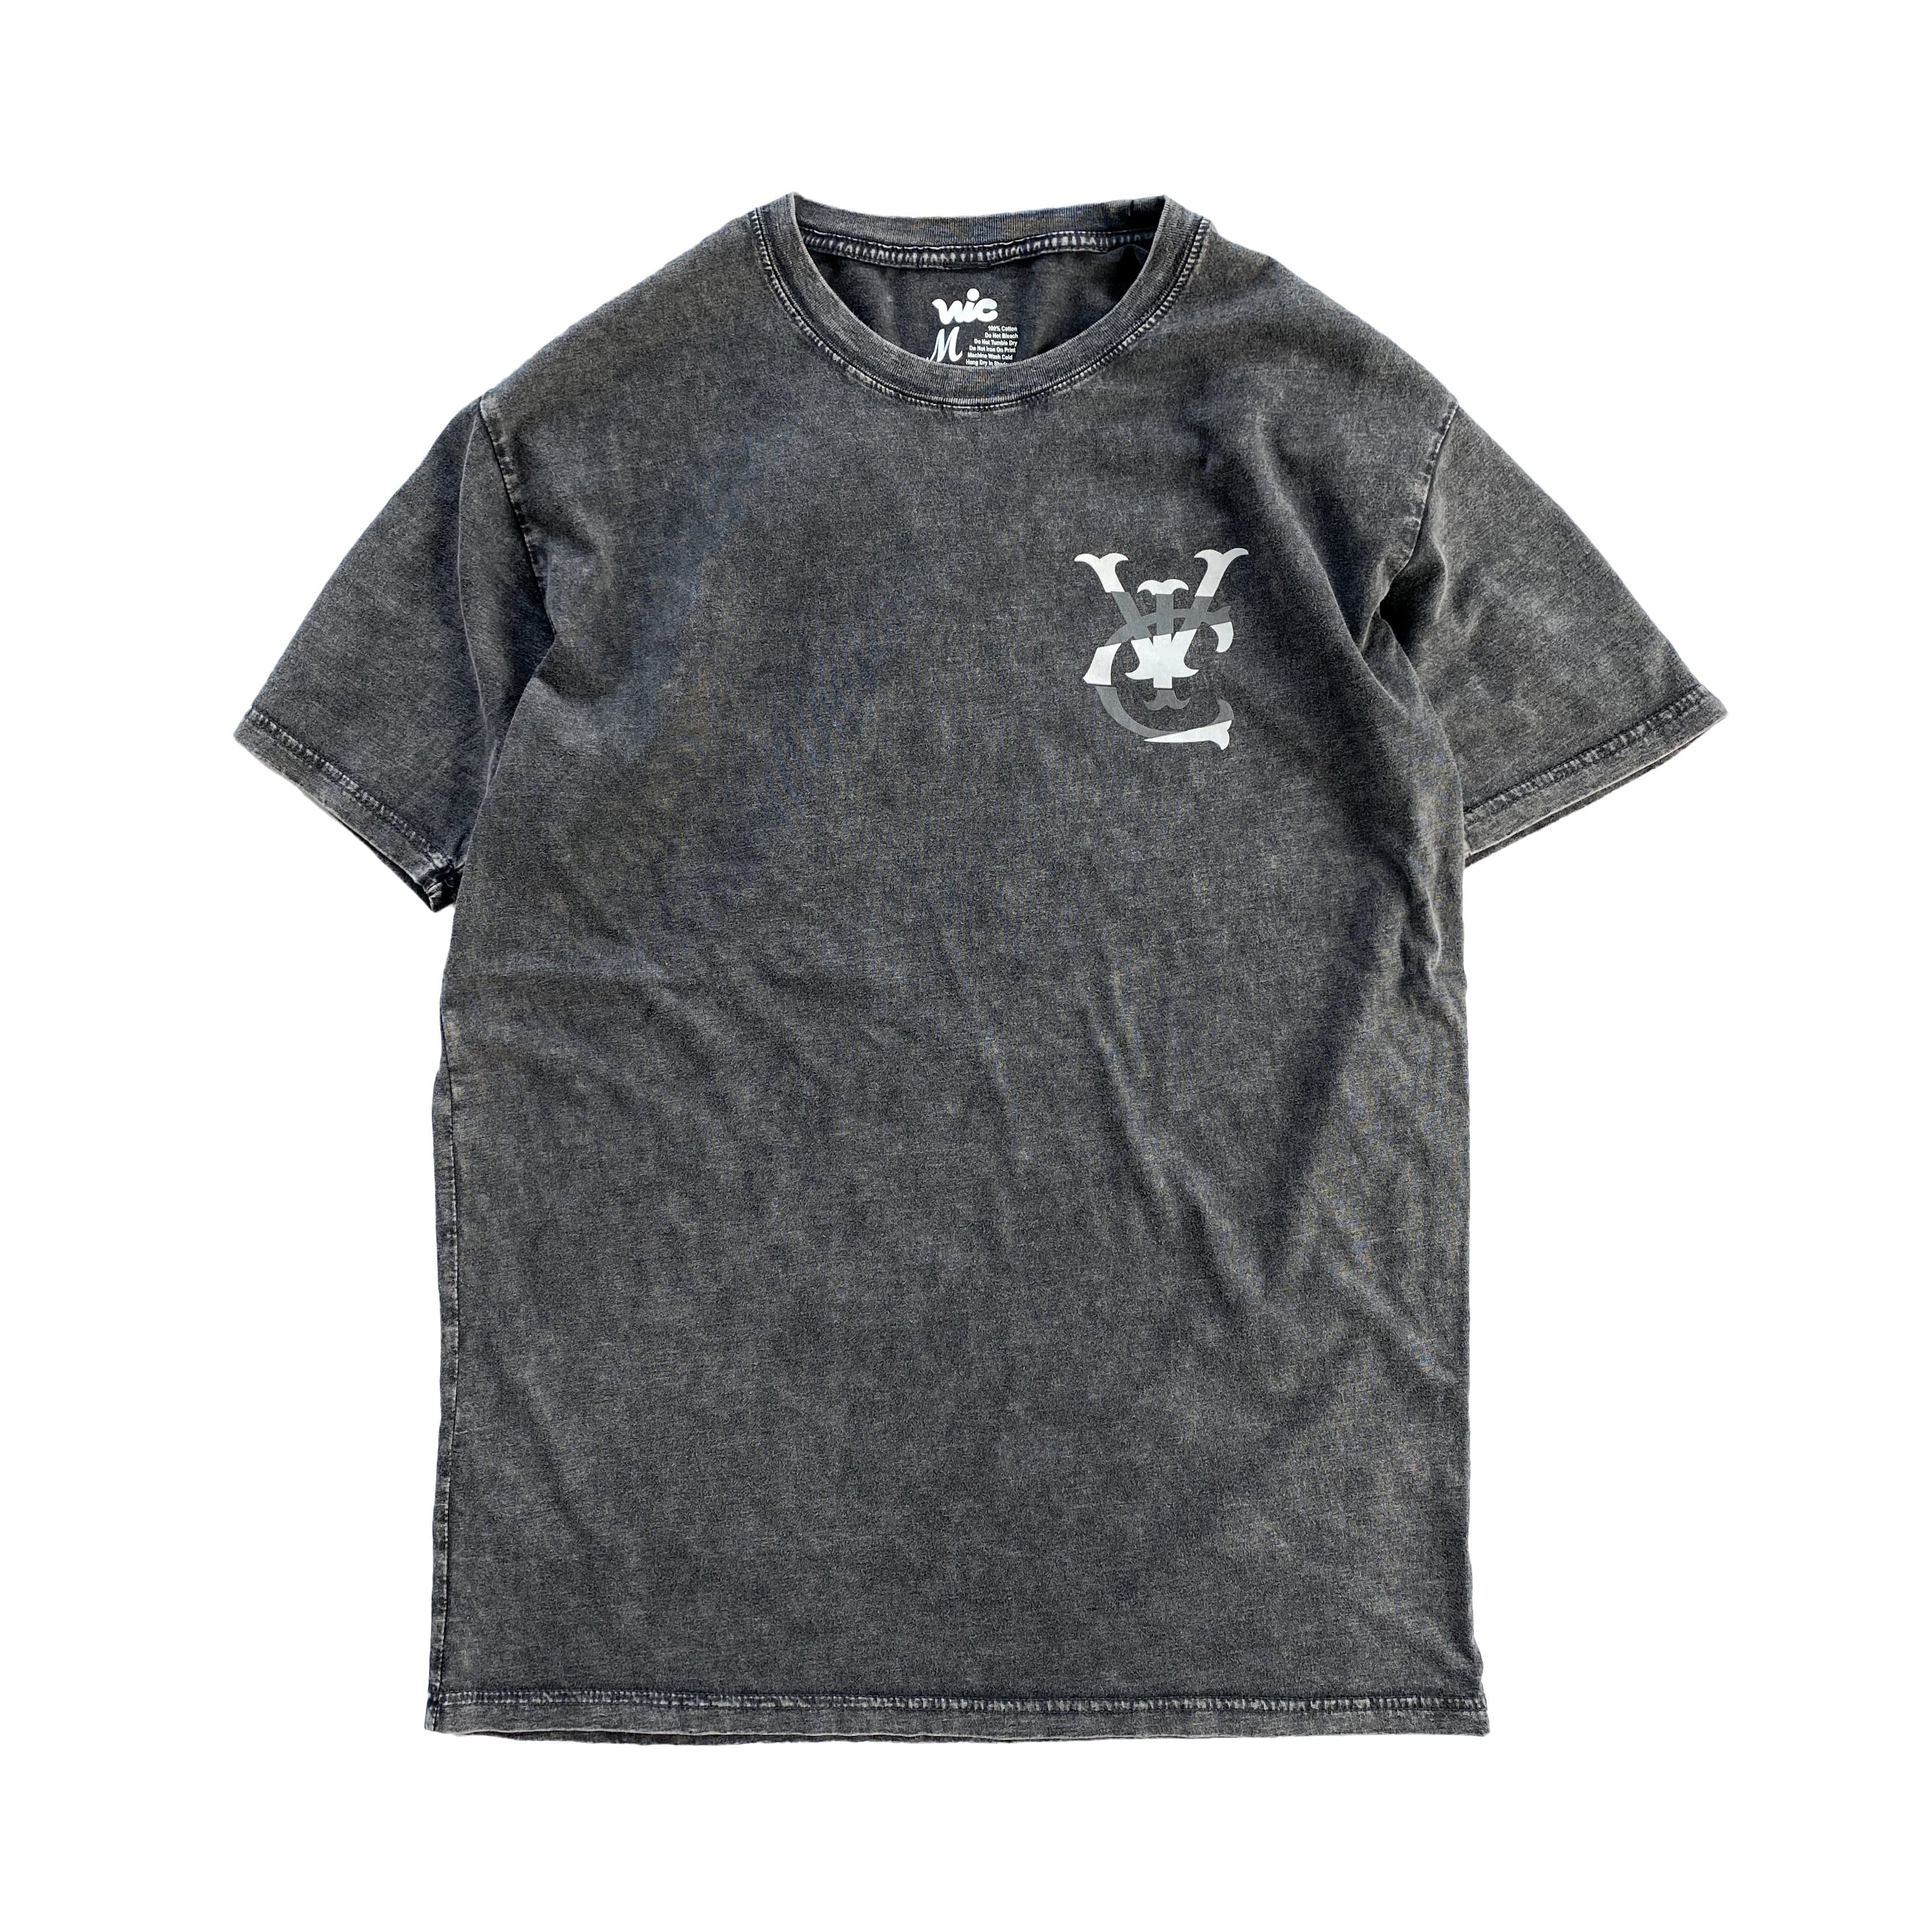 Premium quality tee shirt in vintage black stone wash by New Zealand skate and streetwear clothing label VIC Apparel. Screen printed vintage logo design.